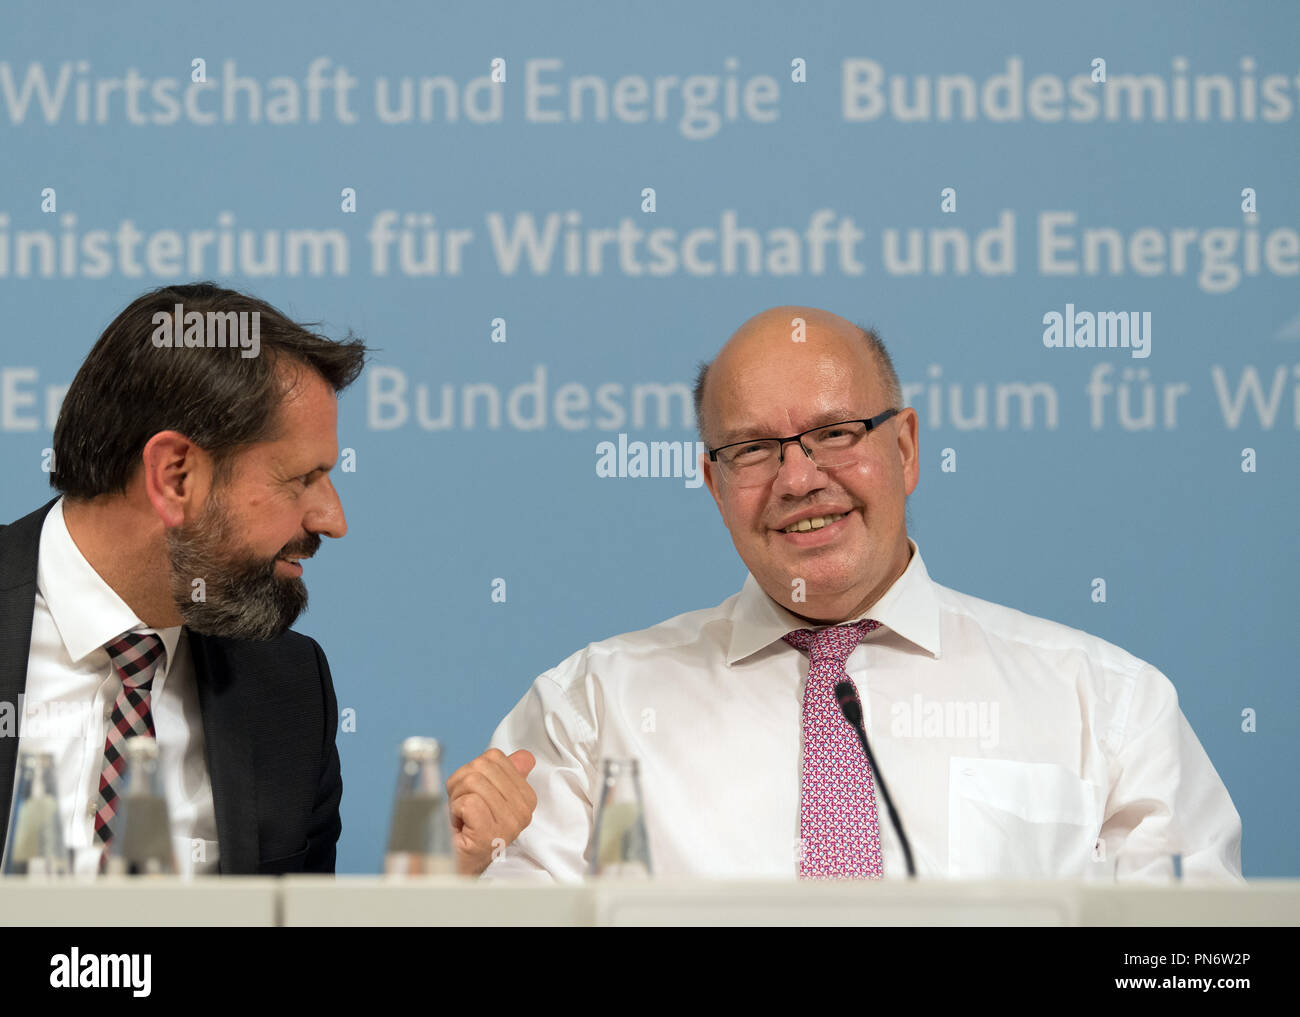 20 September 2018, Berlin: Peter Altmaier (R, CDU), Federal Minister of Economics and Technology and Olaf Lies (SPD), Minister of the Environment, Energy, Building and Climate Protection of Lower Saxony, speak during the press conference on the 'grid summit' to accelerate the energy transition in Germany. Photo: Soeren Stache/dpa - Stock Image